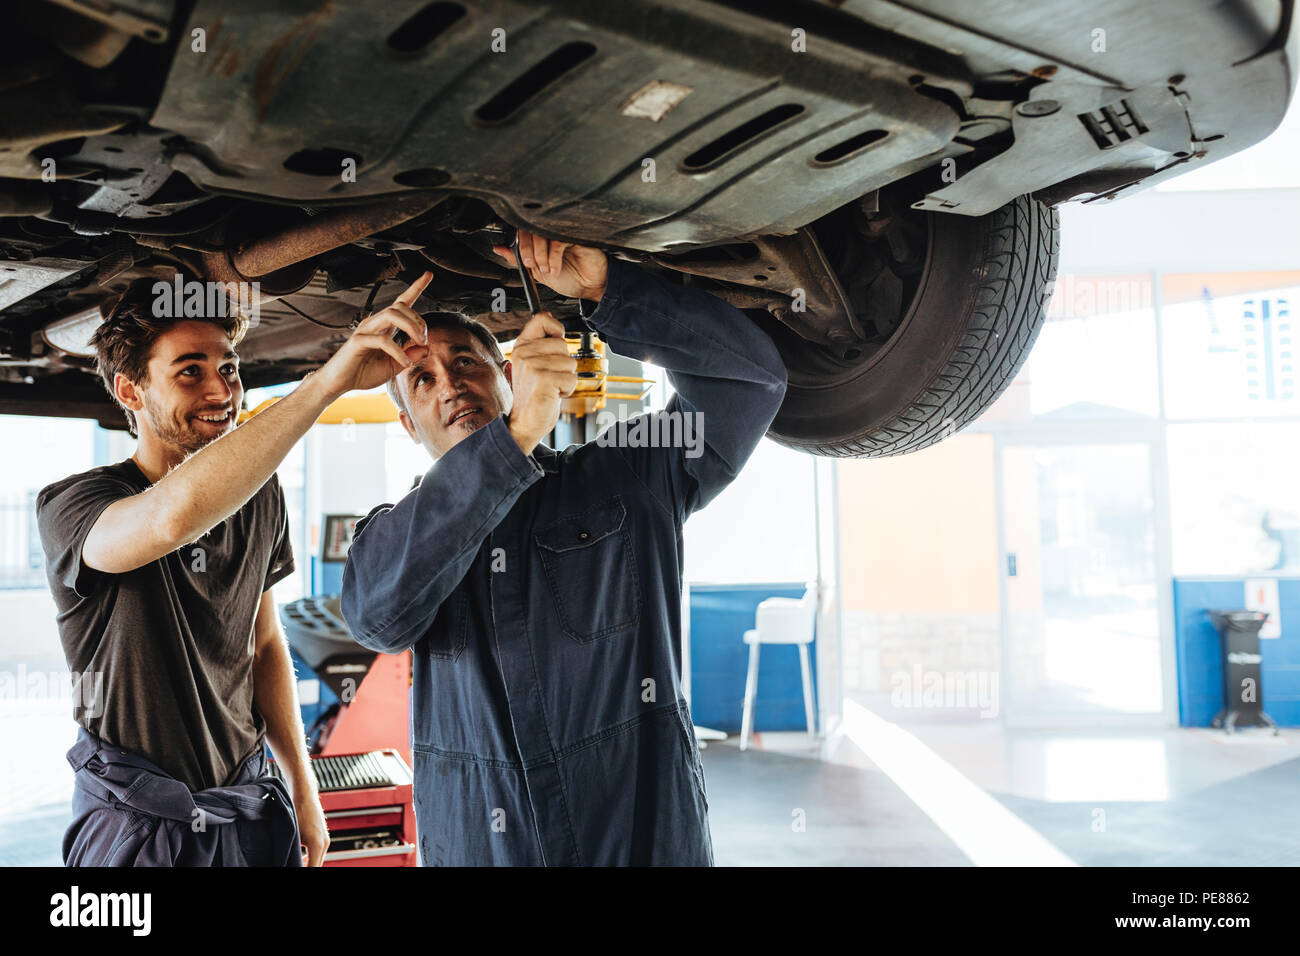 Mechanic fixing the car with coworker pointing and smiling. Two auto repair men working under a lifted vehicle in garage. - Stock Image